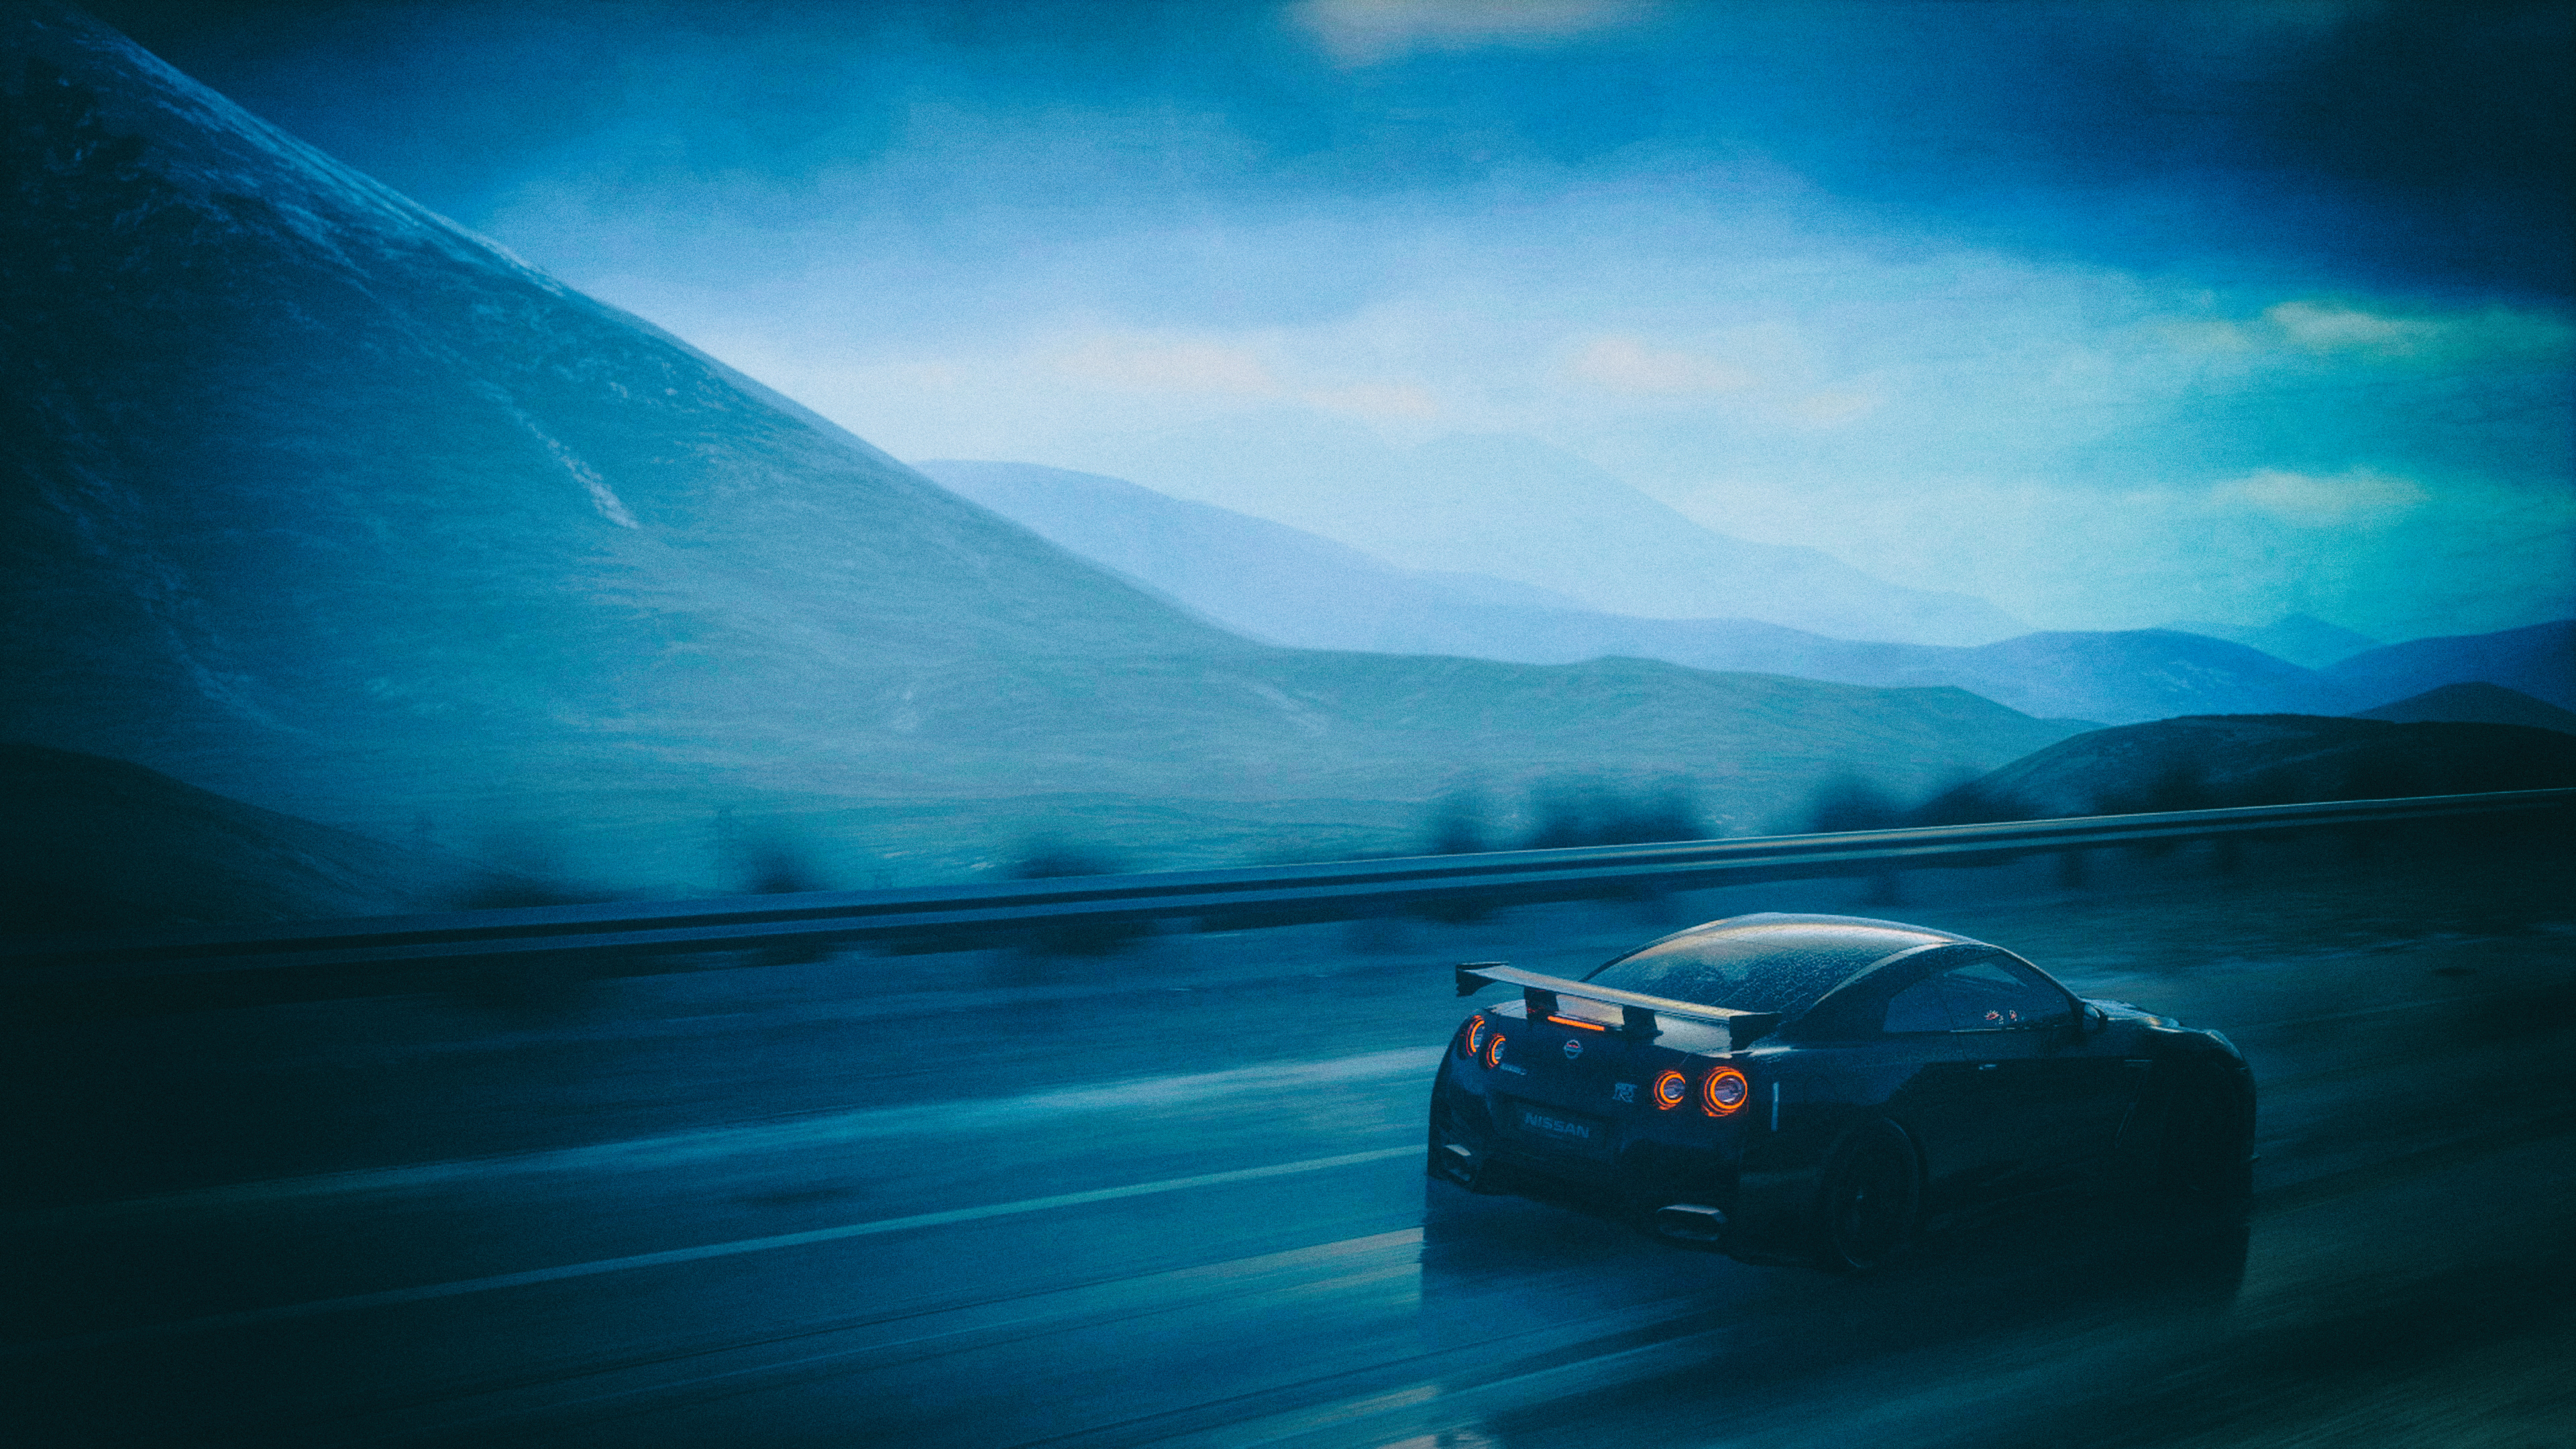 driveclub game nissan gtr 4k 1553074680 - DriveClub Game Nissan Gtr 4k - nissan gtr wallpapers, hd-wallpapers, games wallpapers, driveclub wallpapers, cars wallpapers, 4k-wallpapers